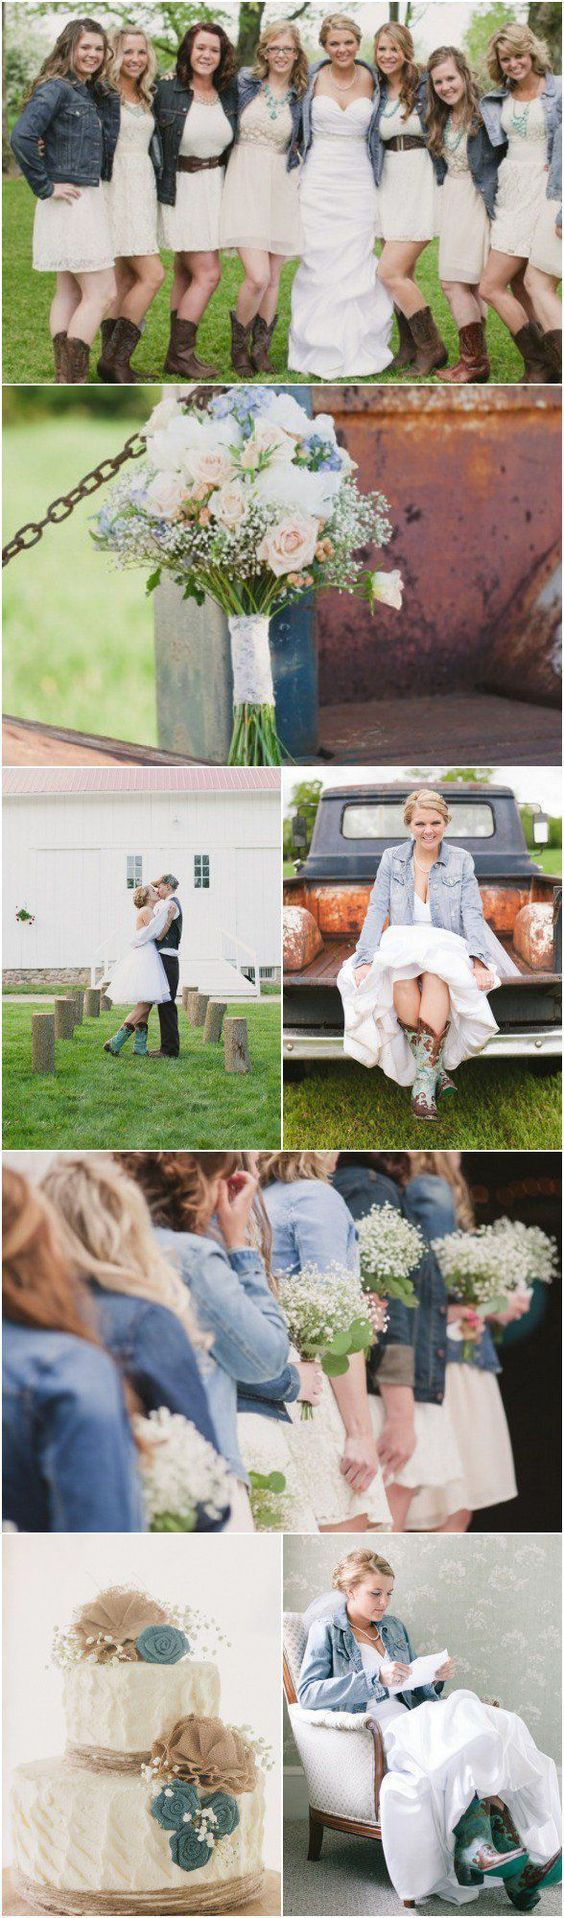 Okay, all you country brides get ready to start taking notes because this wedding is a country showstopper. From a bride in a jean jacket to DIY wedding centerpieces this wedding has it all. Taking place on a farm in Michigan, Meg and Cody decorated their day from top to bottom with country charm and rustic wedding elegance. I love how the jean jackets look with the bridesmaids dress and I think it is actually kind of cute with the wedding gown for the reception. Any of you brides thinking…